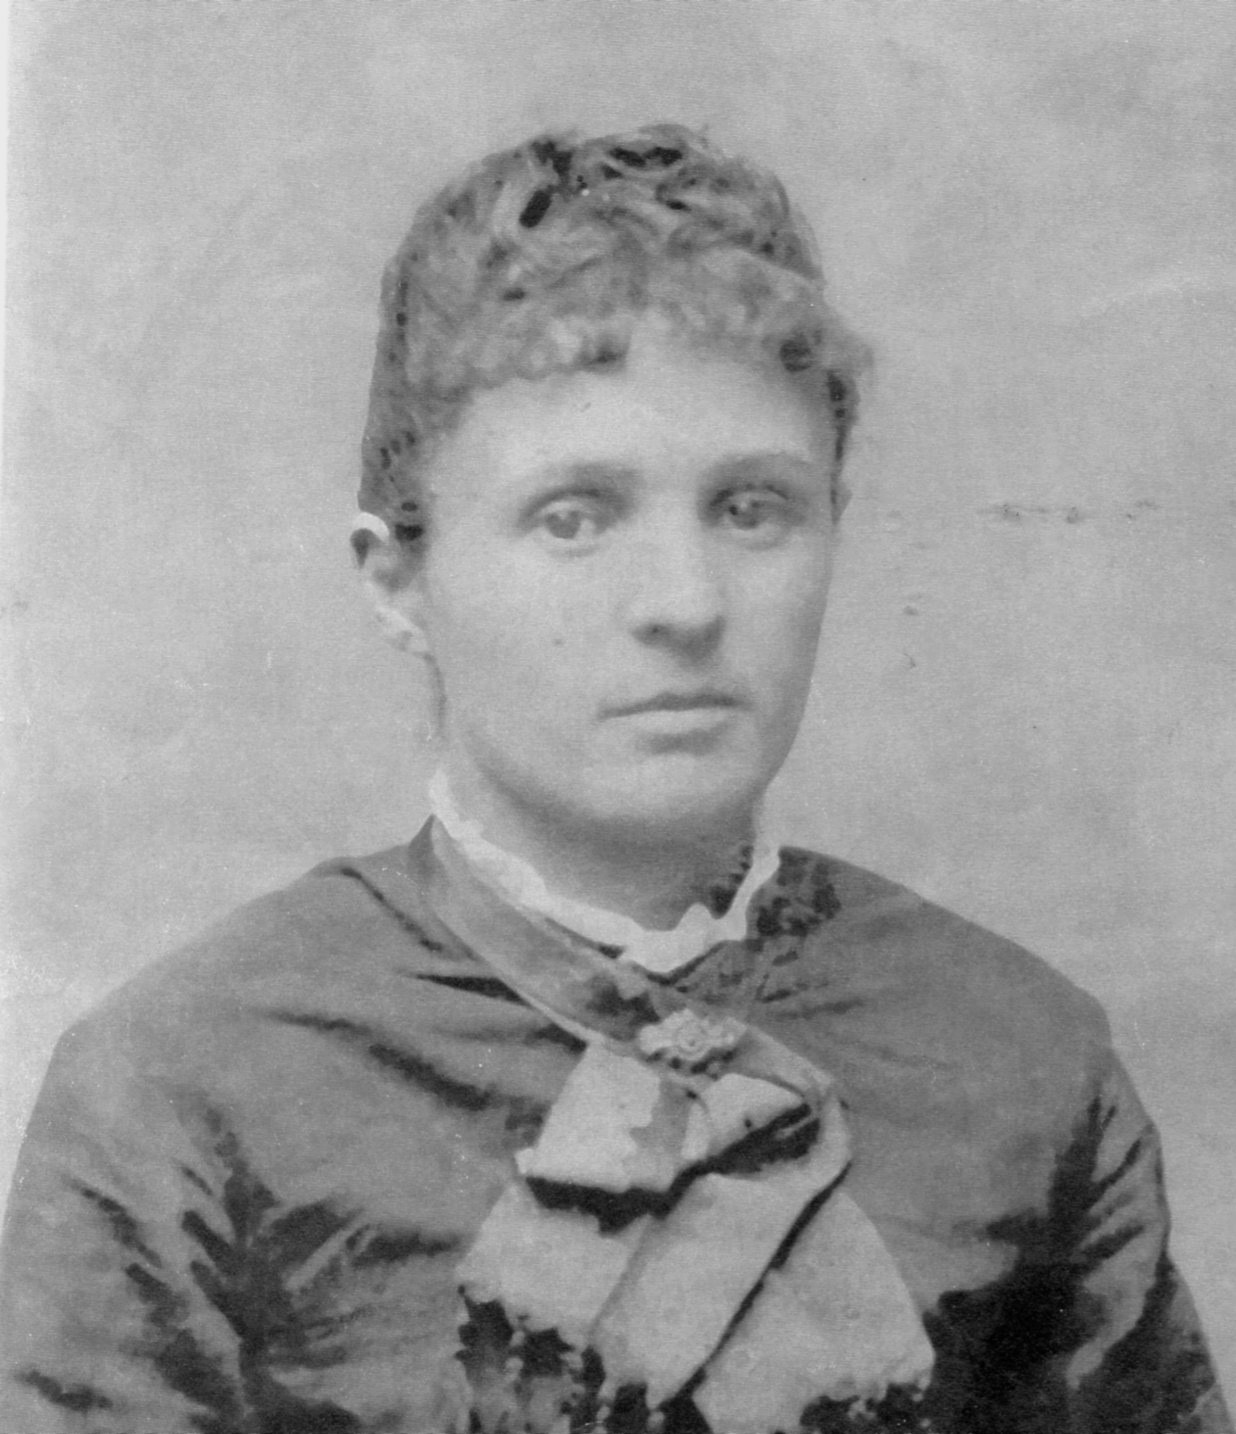 Mary Roehrdanz Kocher